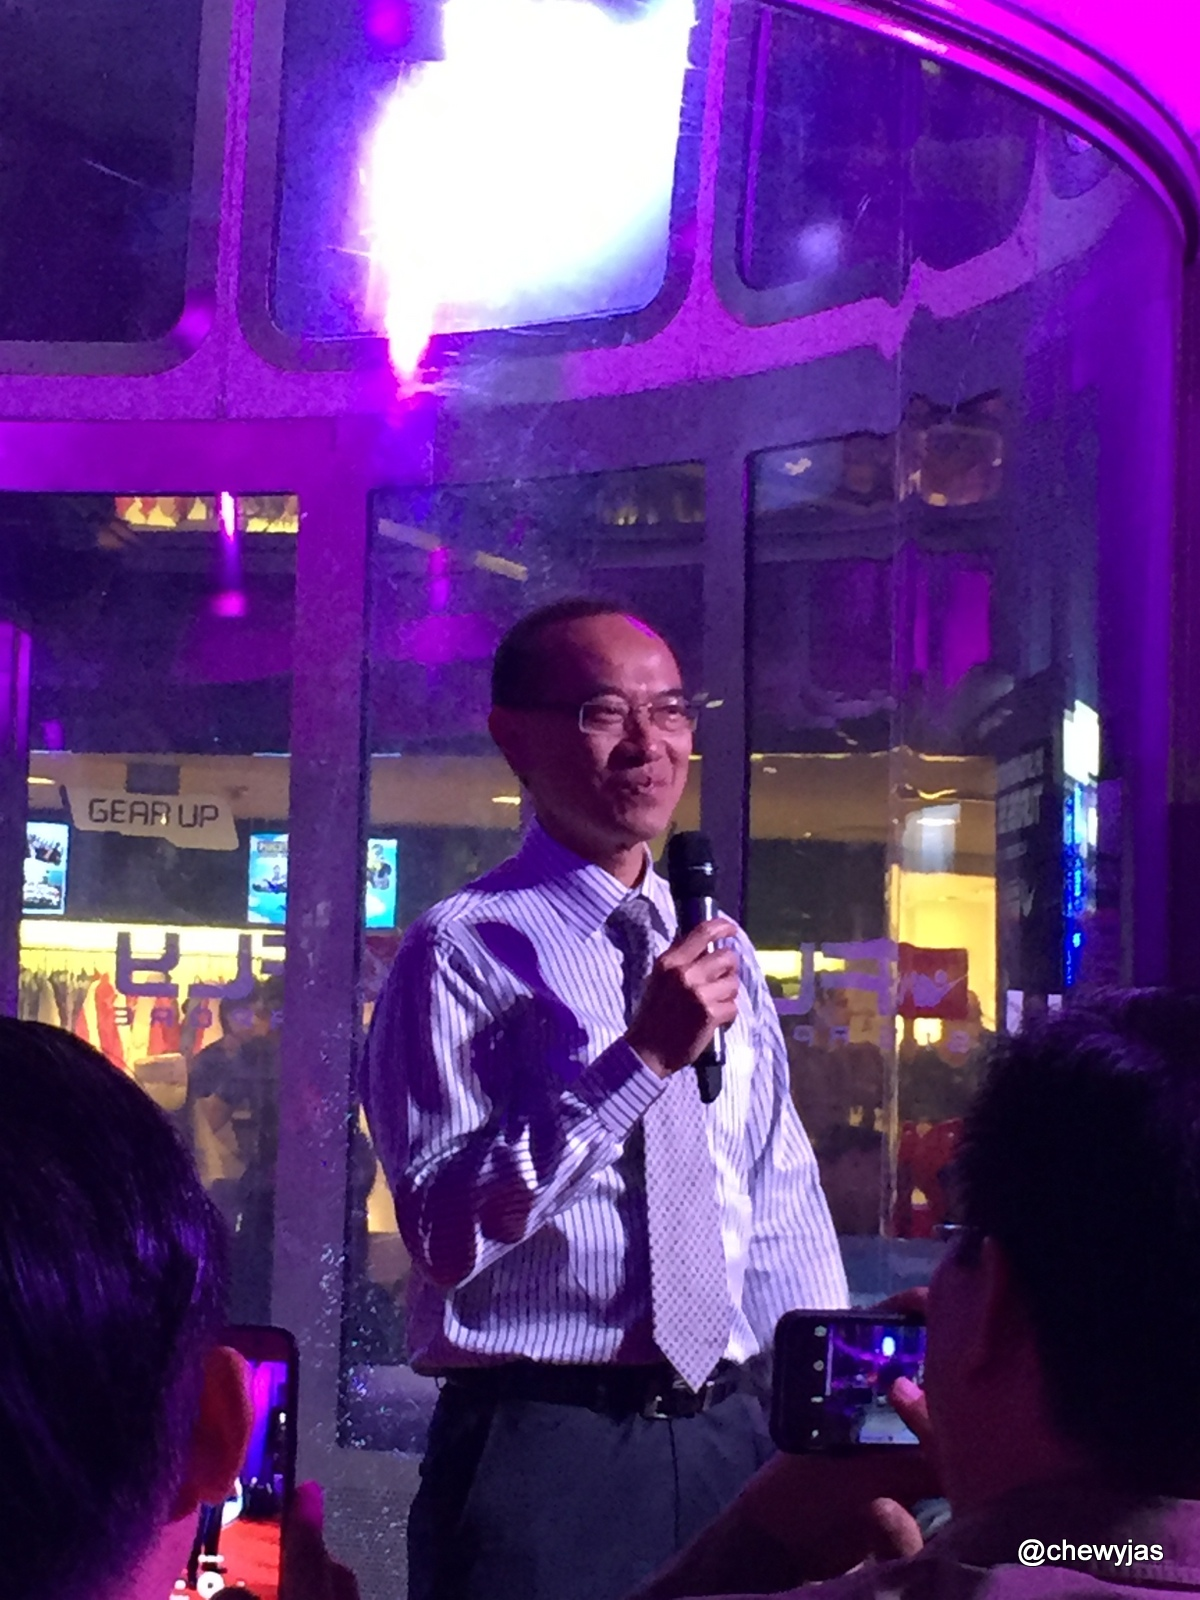 Chewyjas Event Ifly Singapore 5th Anniversary Night Of Sports Adult Guest Honour Mr George Yeo Was Here To Grace The He Also One Who Opening